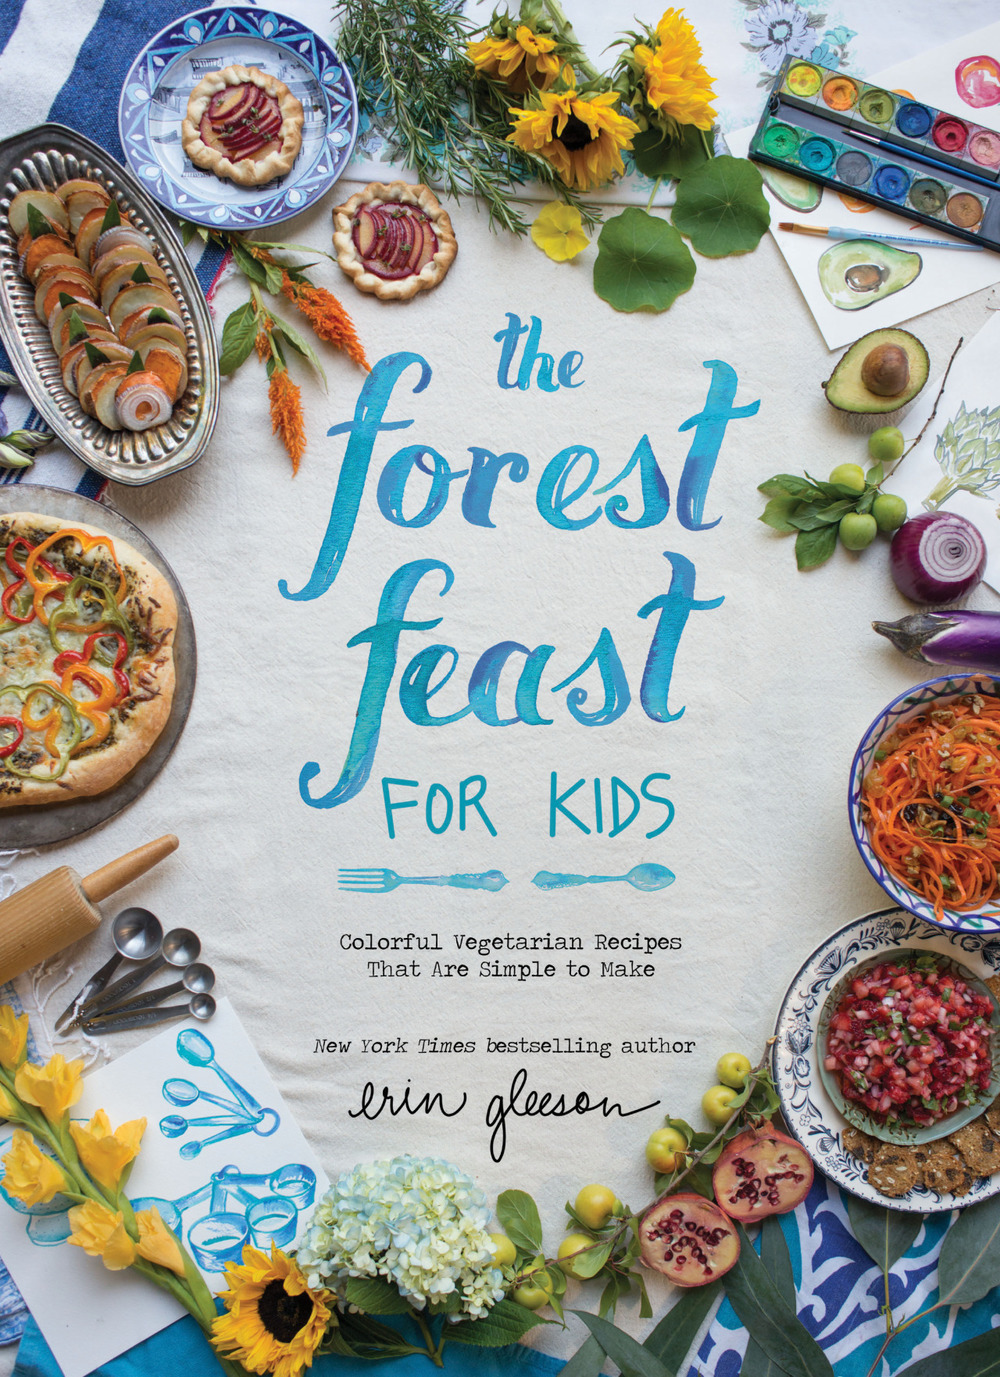 As of February 2016, my 2nd cookbook, The Forest Feast for Kids is now out!!! It was so much fun to make and I'm so excited to share it. It's an adapted kid-focused version of my first book. The Forest Feast for Kids includes the most kid-friendly favorites from The Forest Feast, along with 20 new recipes, plus ideas for kids' parties and easy-to-follow instructions on techniques, measurements, and other helpful kitchen aides. One of my Forest Feast goals is to get families cooking in the kitchen together and this book will do just that! It's available via these links: Abrams | Amazon | Target | Barnes & Noble | Indiebound | Indigo | Powells | Books-A-Million Tag recipes you make online #forestfeastkids and tag me @theforestfeast. Happy cooking!